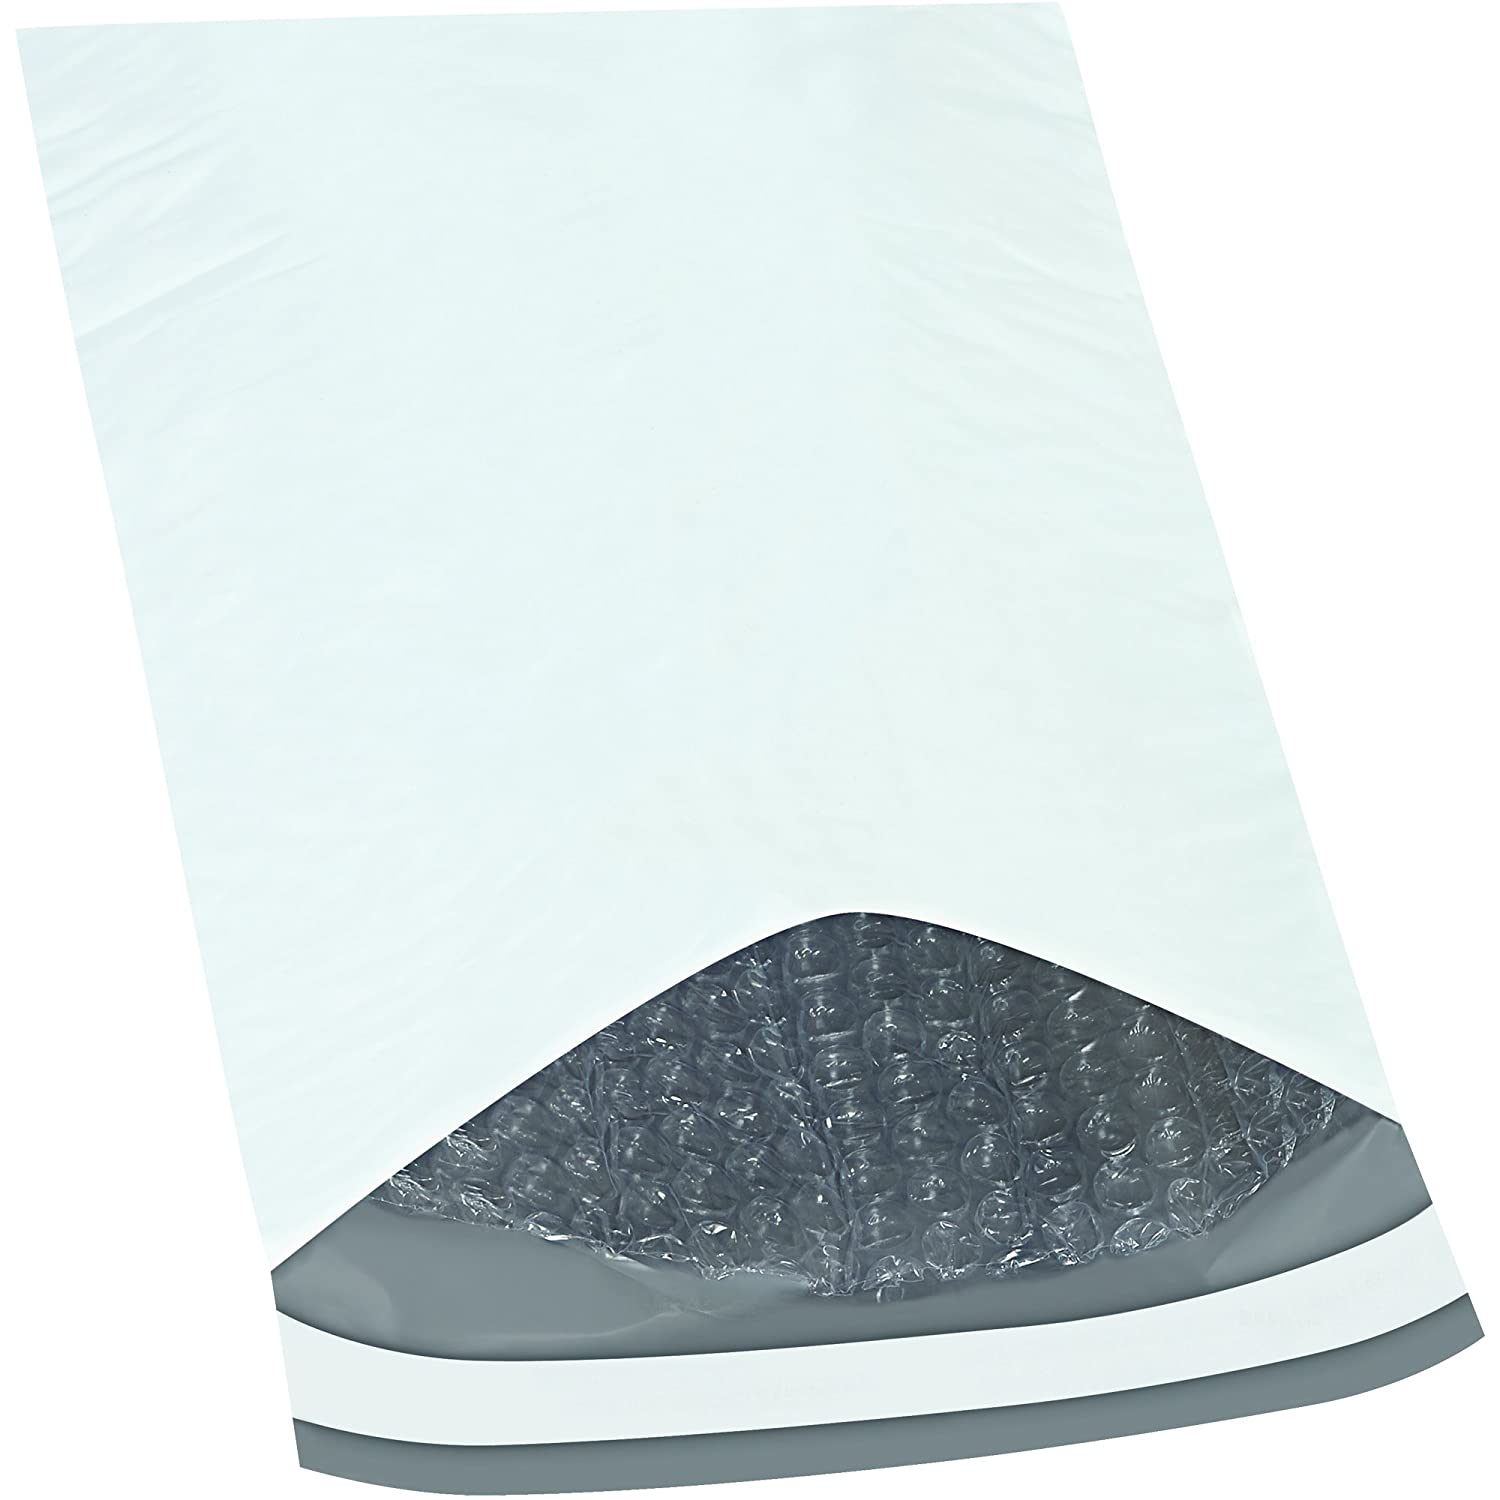 Tape Logic Bubble Lined Poly Mailers 7 1 4 x 8 7.25 Width 8 Length White Pack of 200